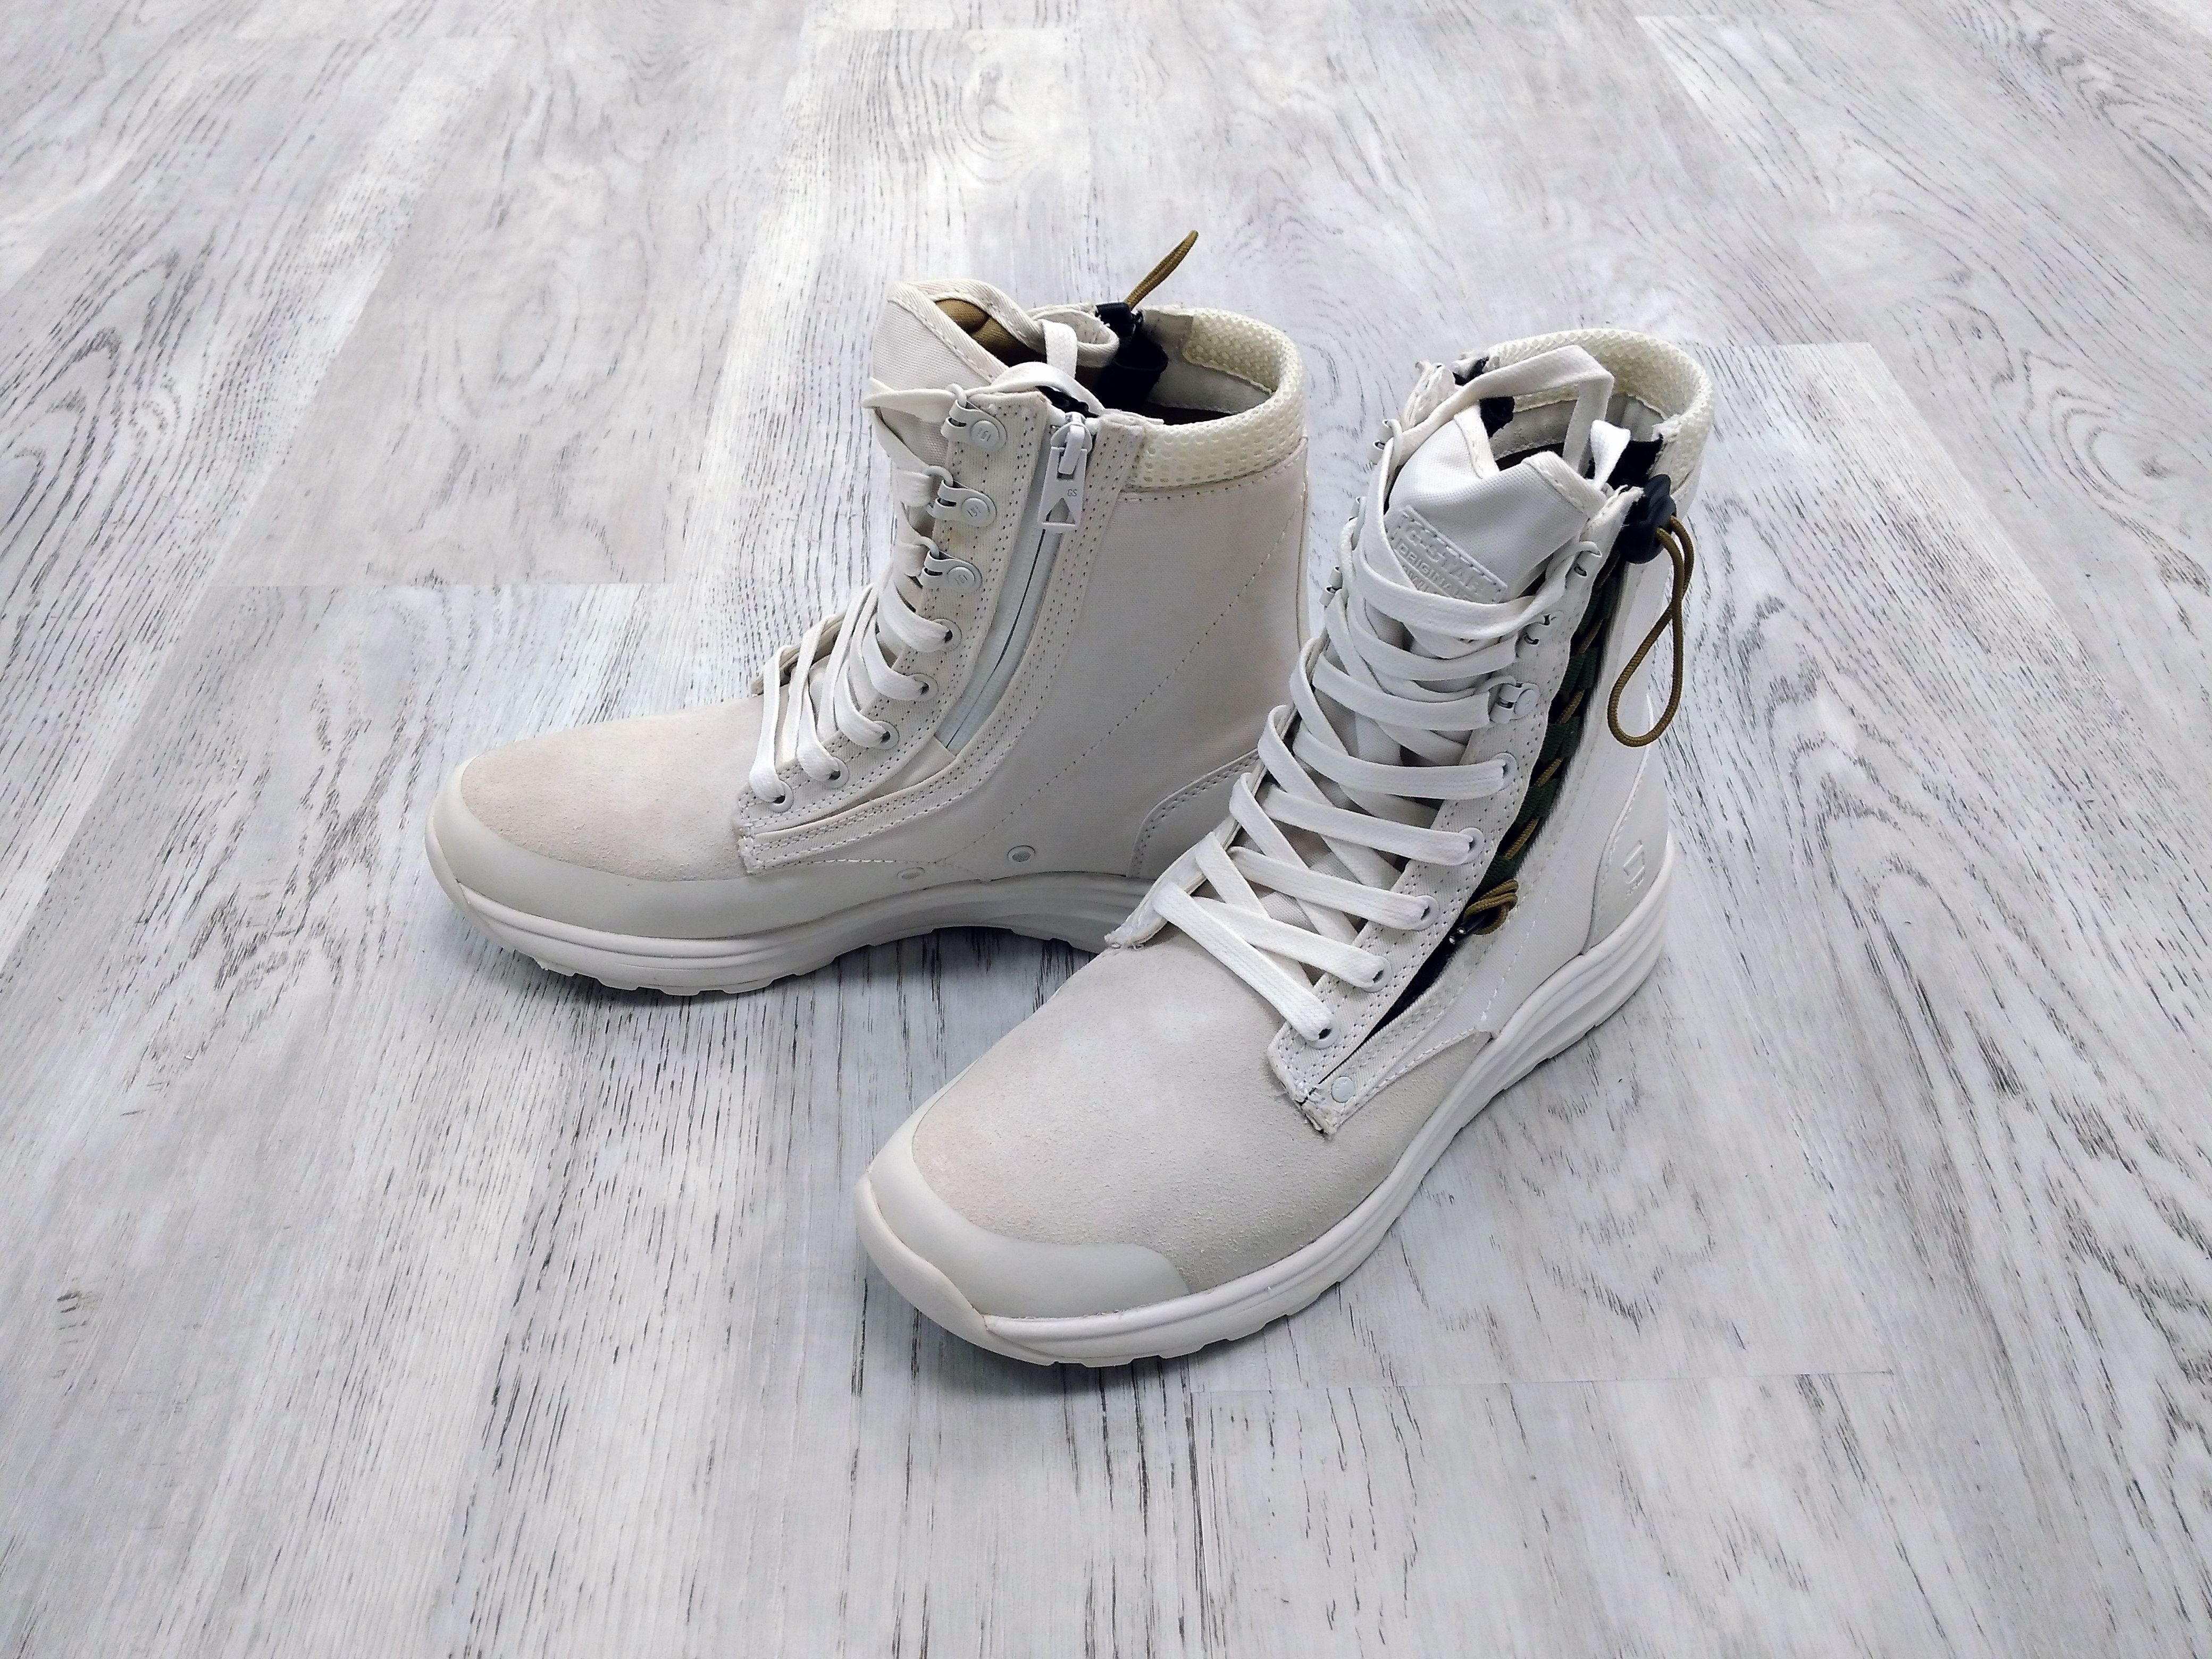 908ff02f1d3ad G-Star Raw - Cargo High Sneakers Rewrite the rules with these  military-inspired